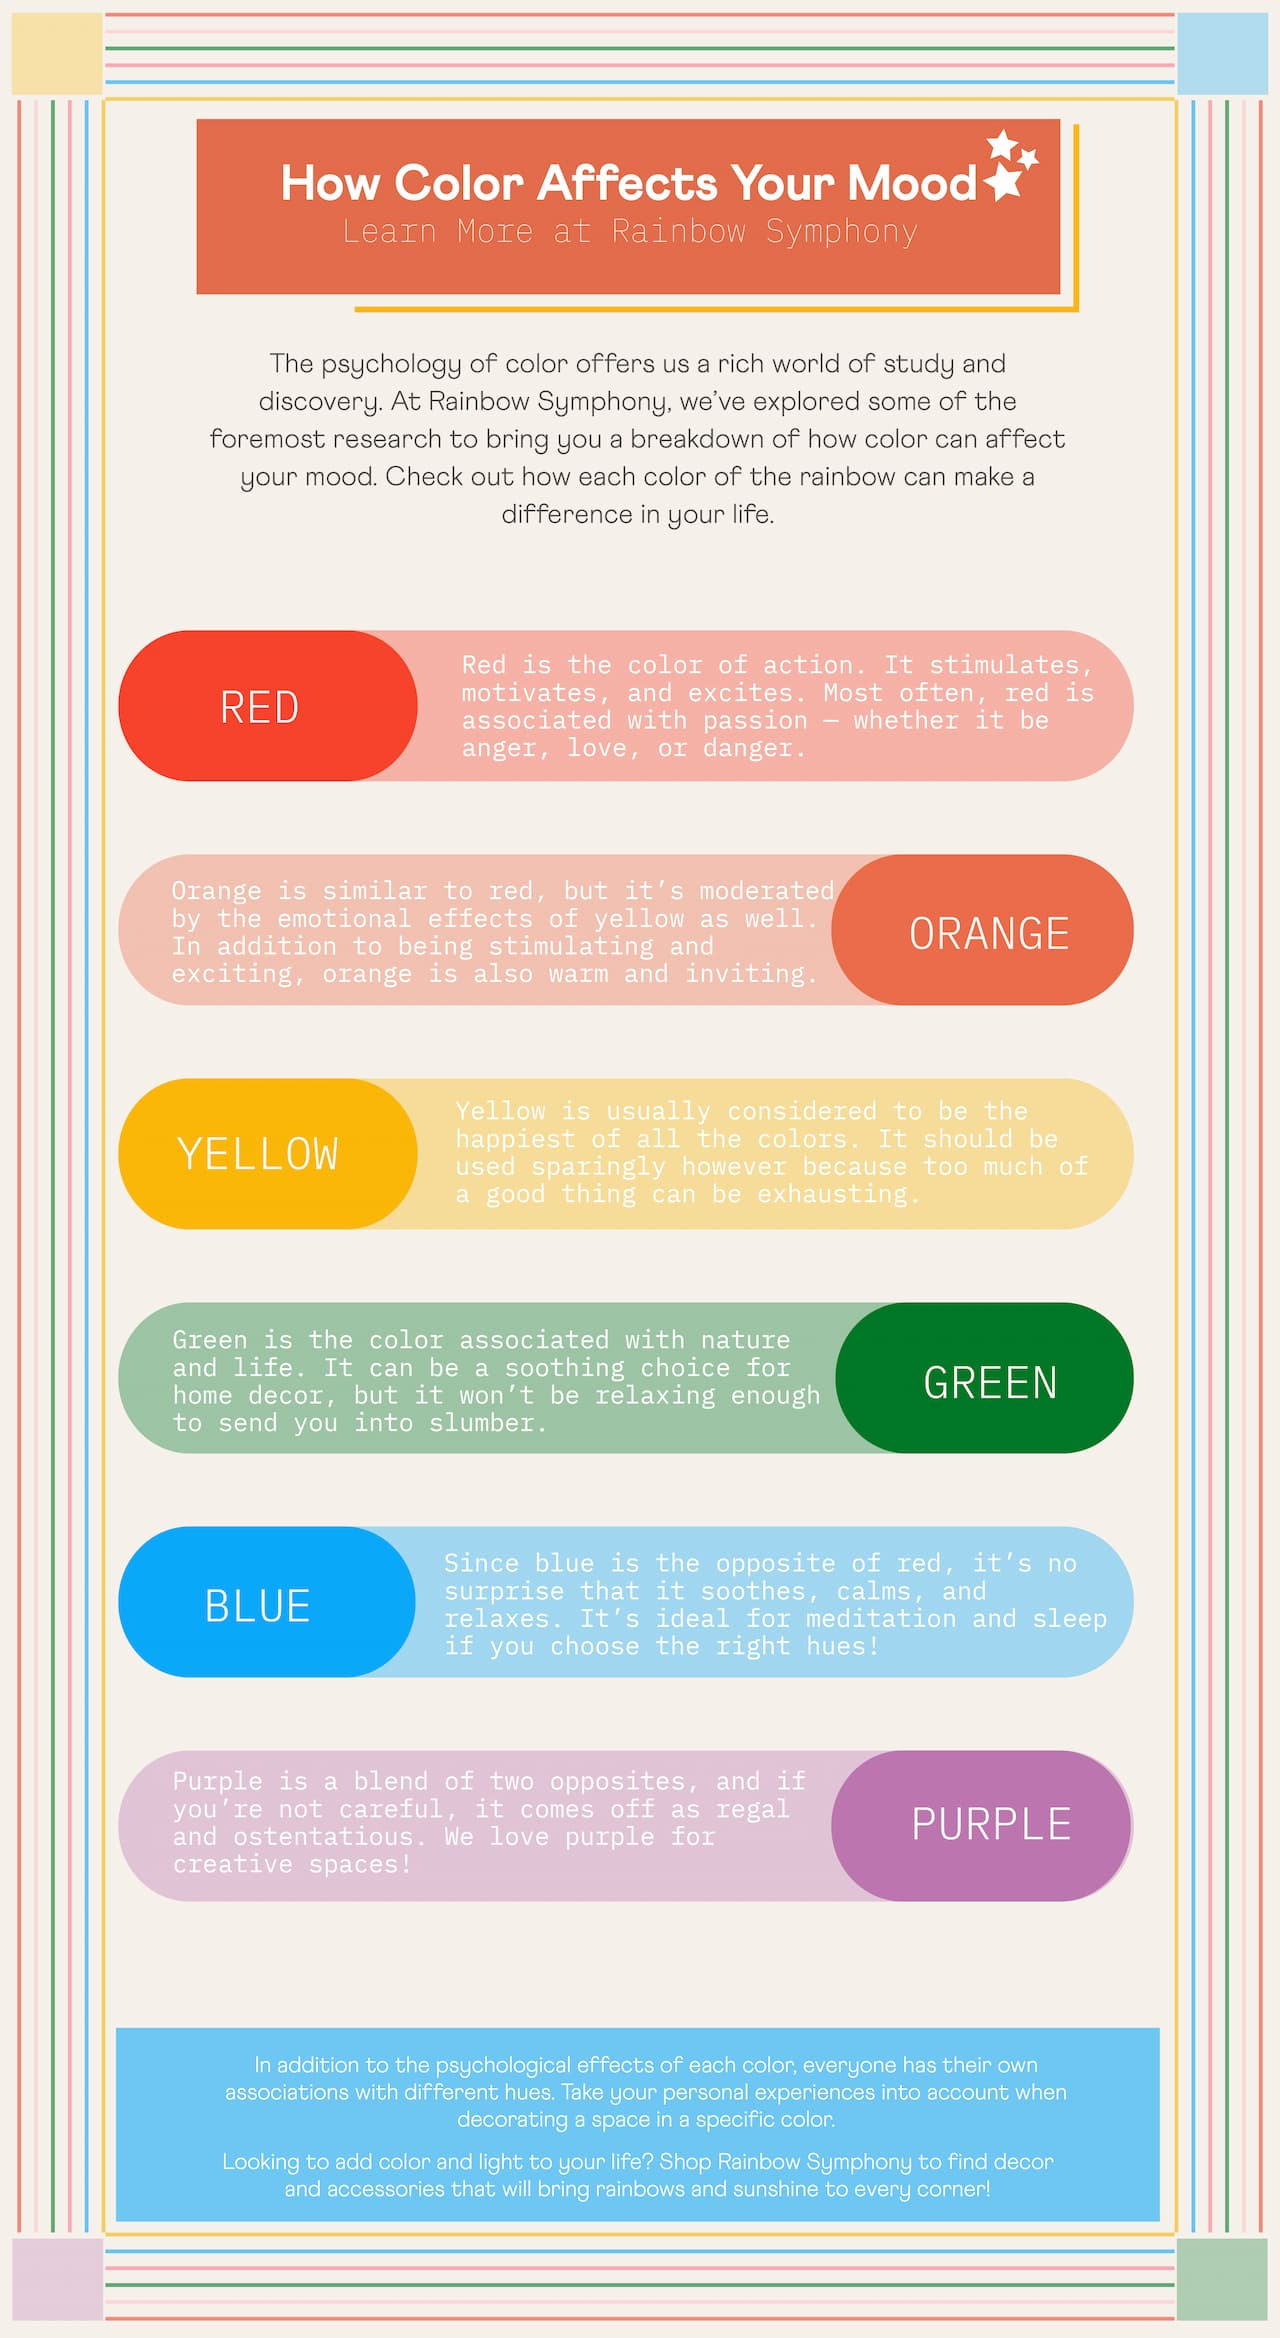 An infographic on how color affects your mood.